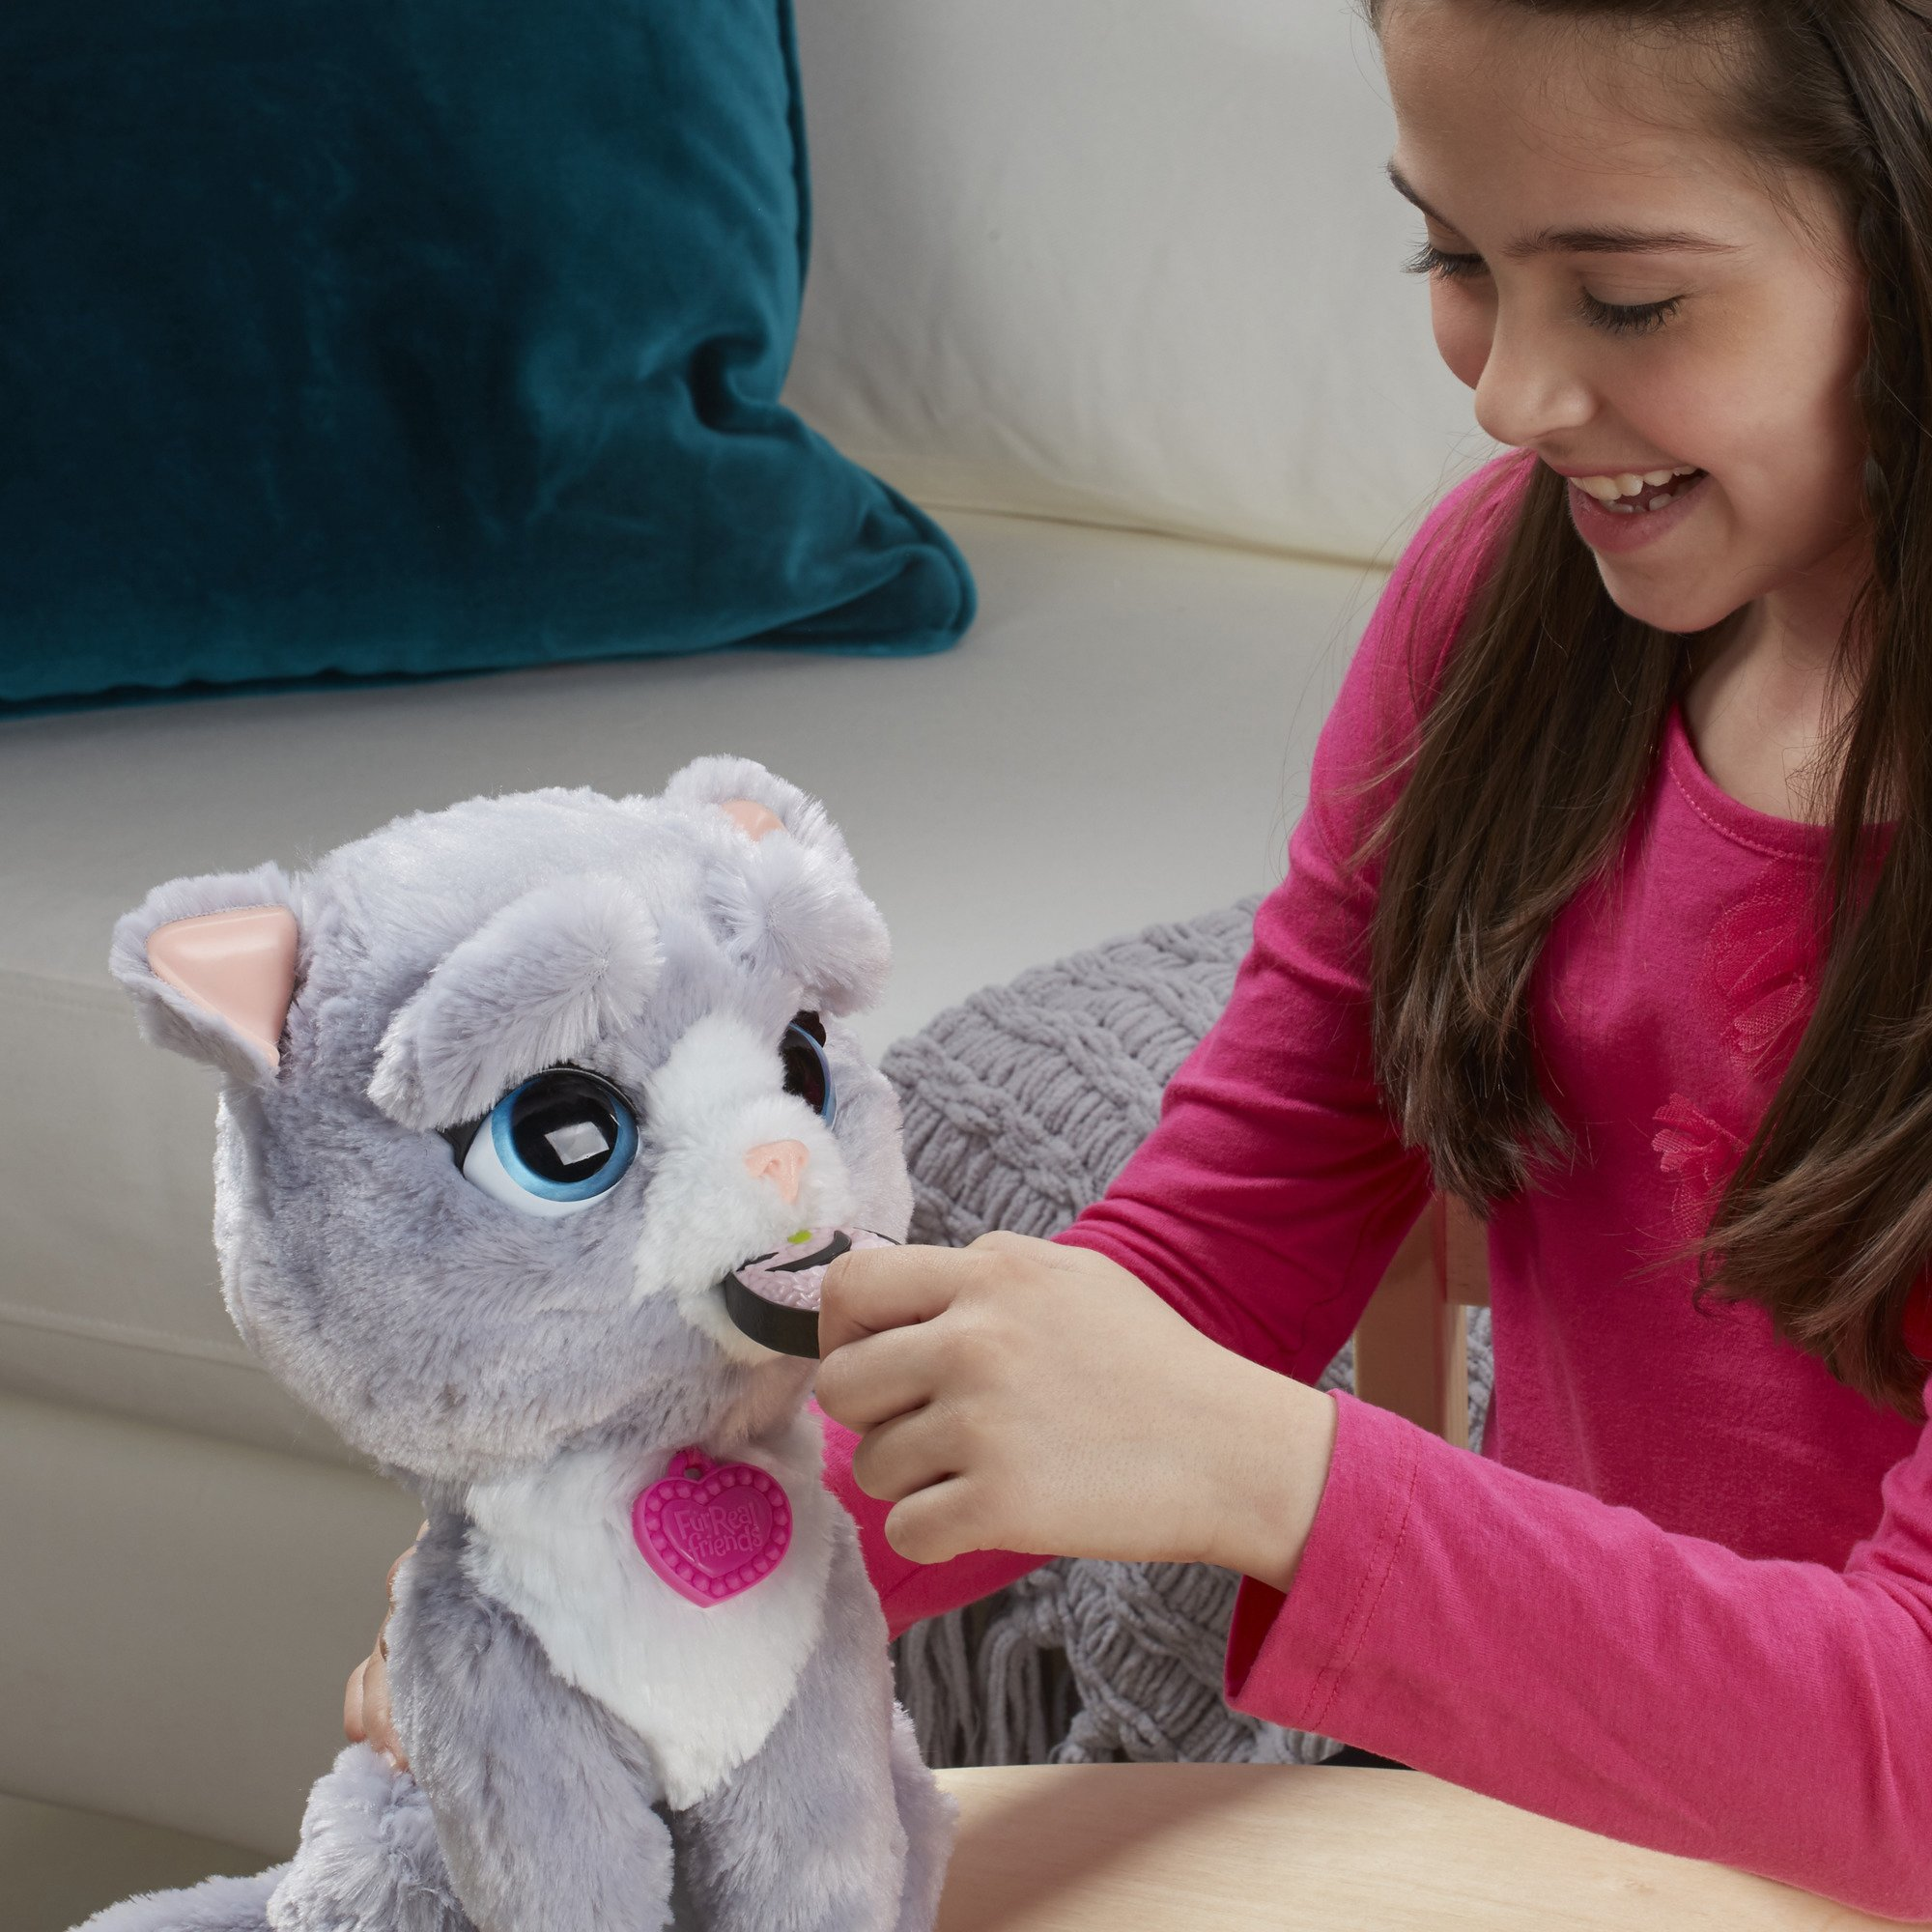 FurReal B5936AF1 Bootsie Interactive Plush Kitty Toy, Ages 4 & Up by FurReal (Image #12)